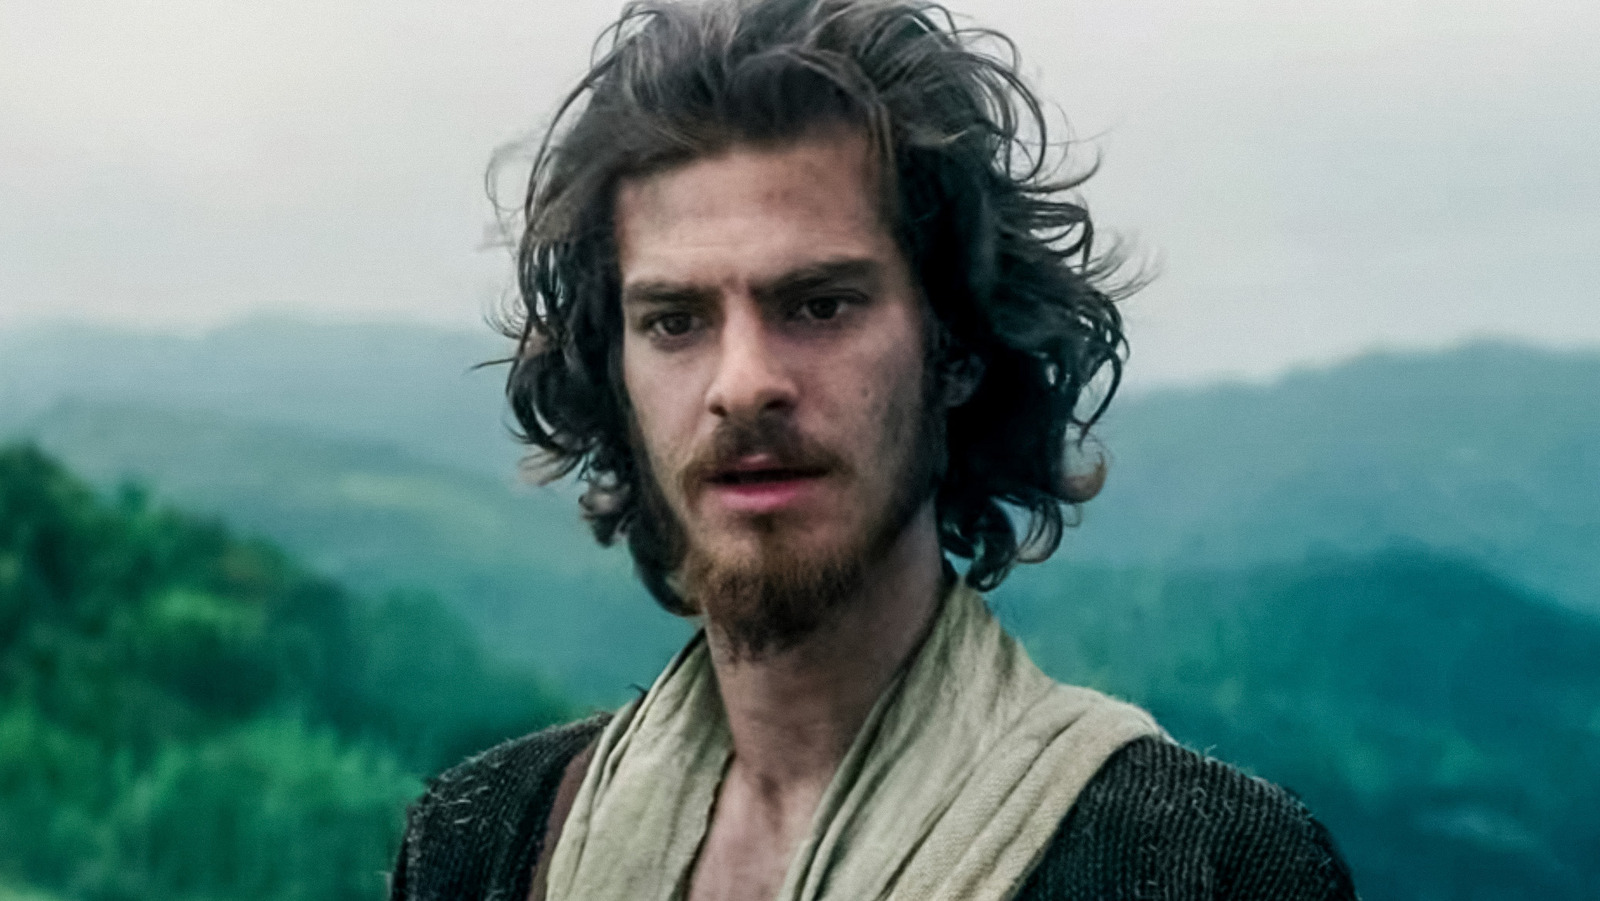 Andrew Garfield Explains Why He Plays So Many Religious Characters